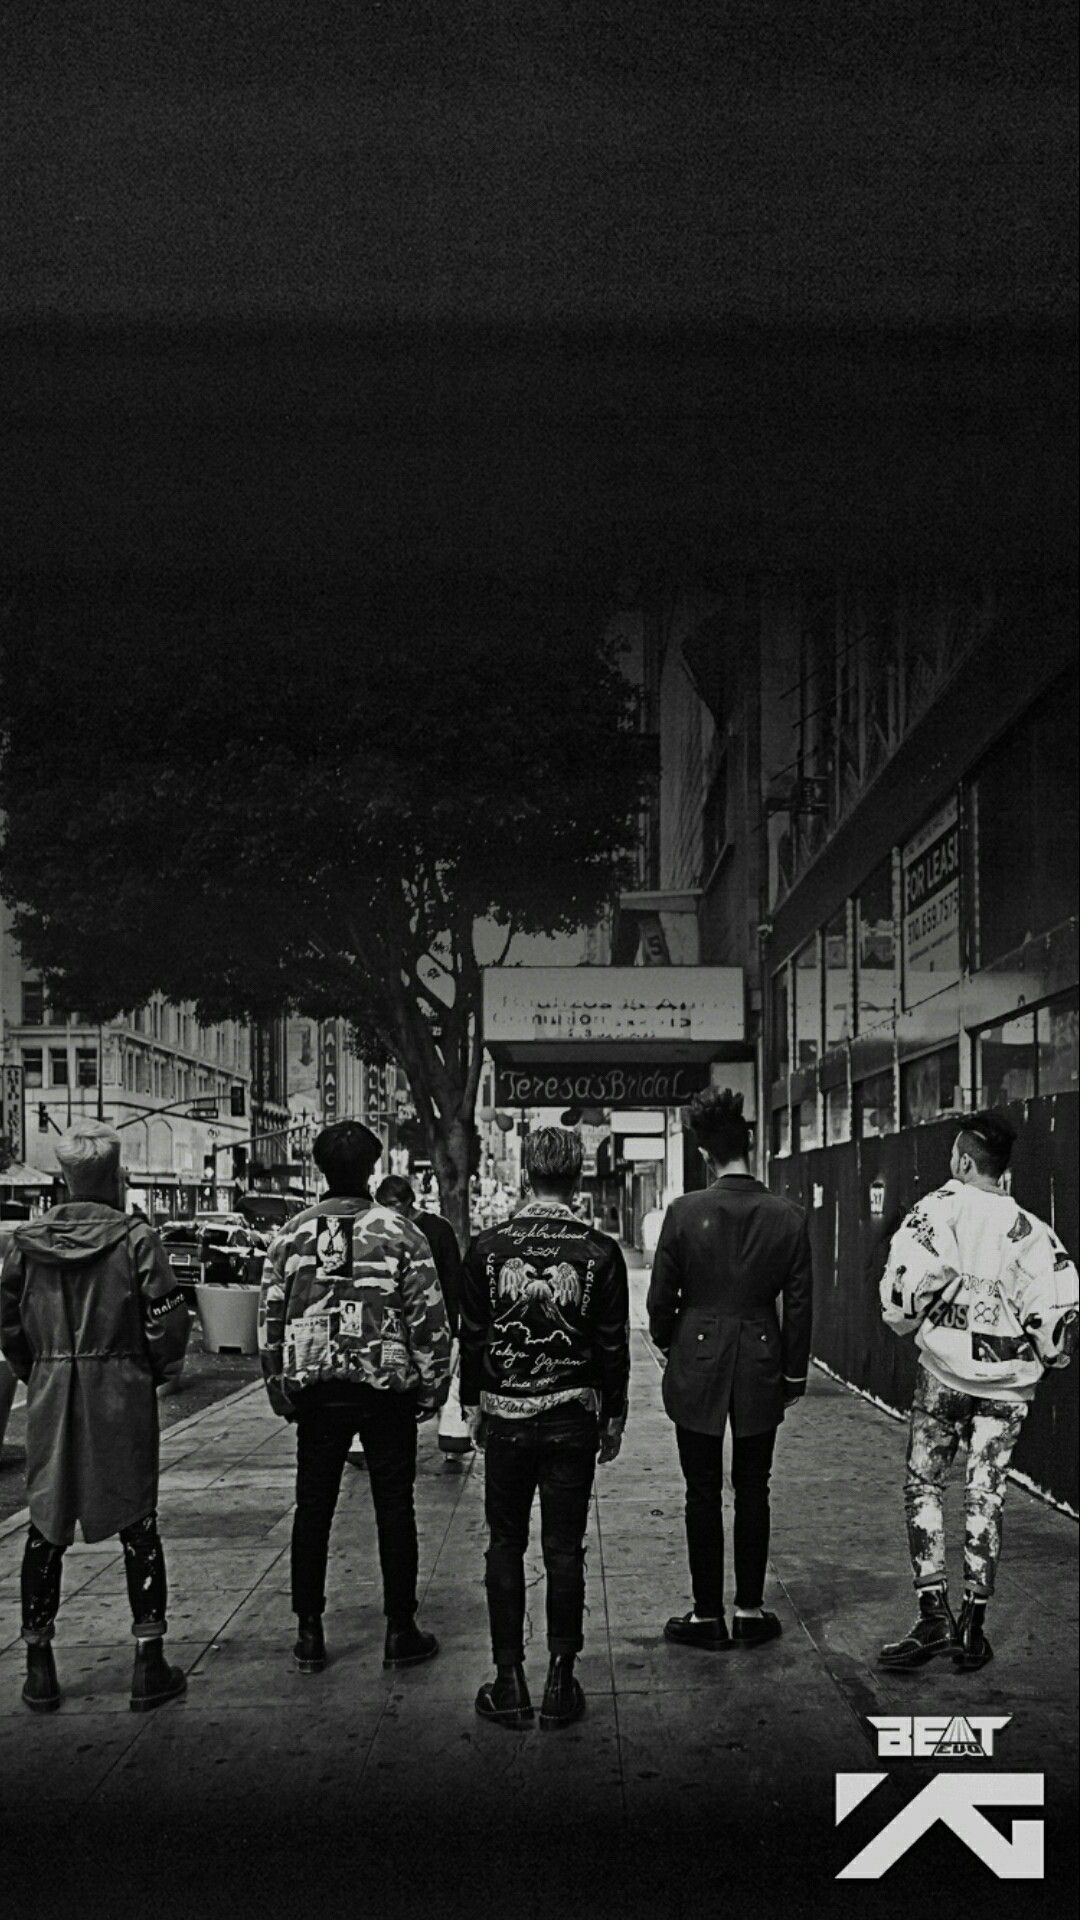 Bigbang Is Lit Loser Madeseries M Wallpaper Beatevo Yg